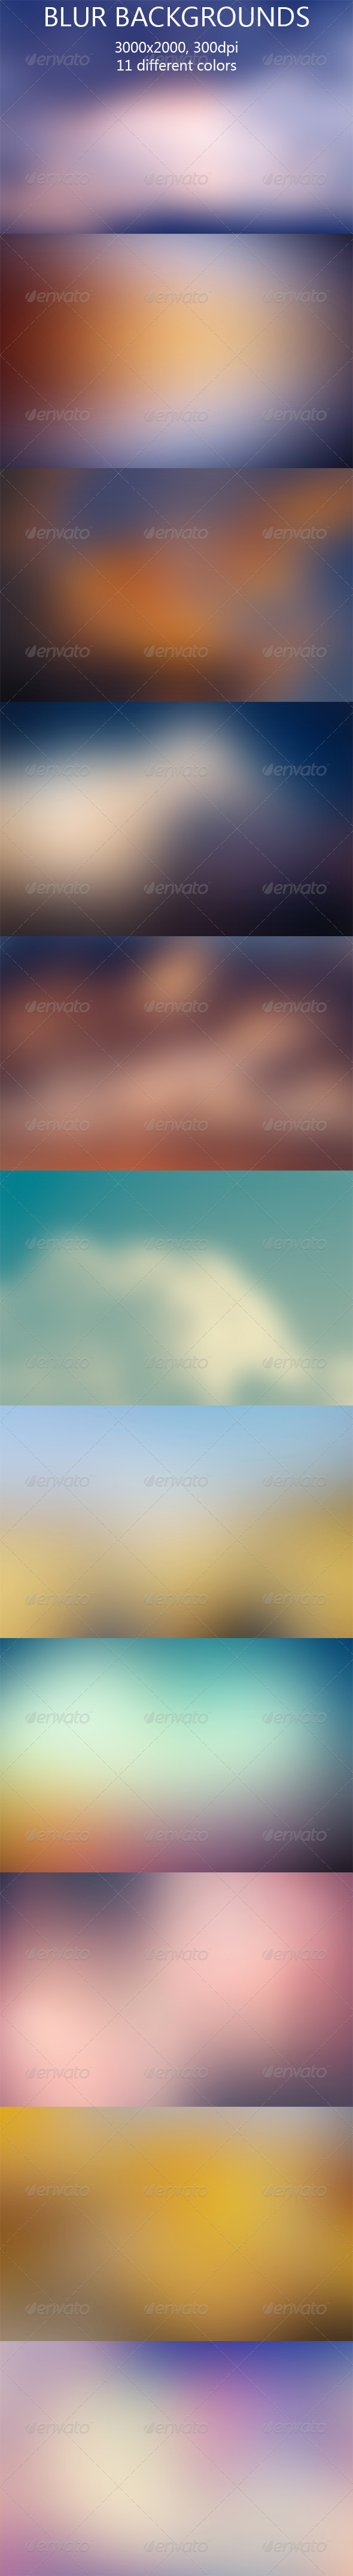 GraphicRiver Blur Backgrounds 7987935